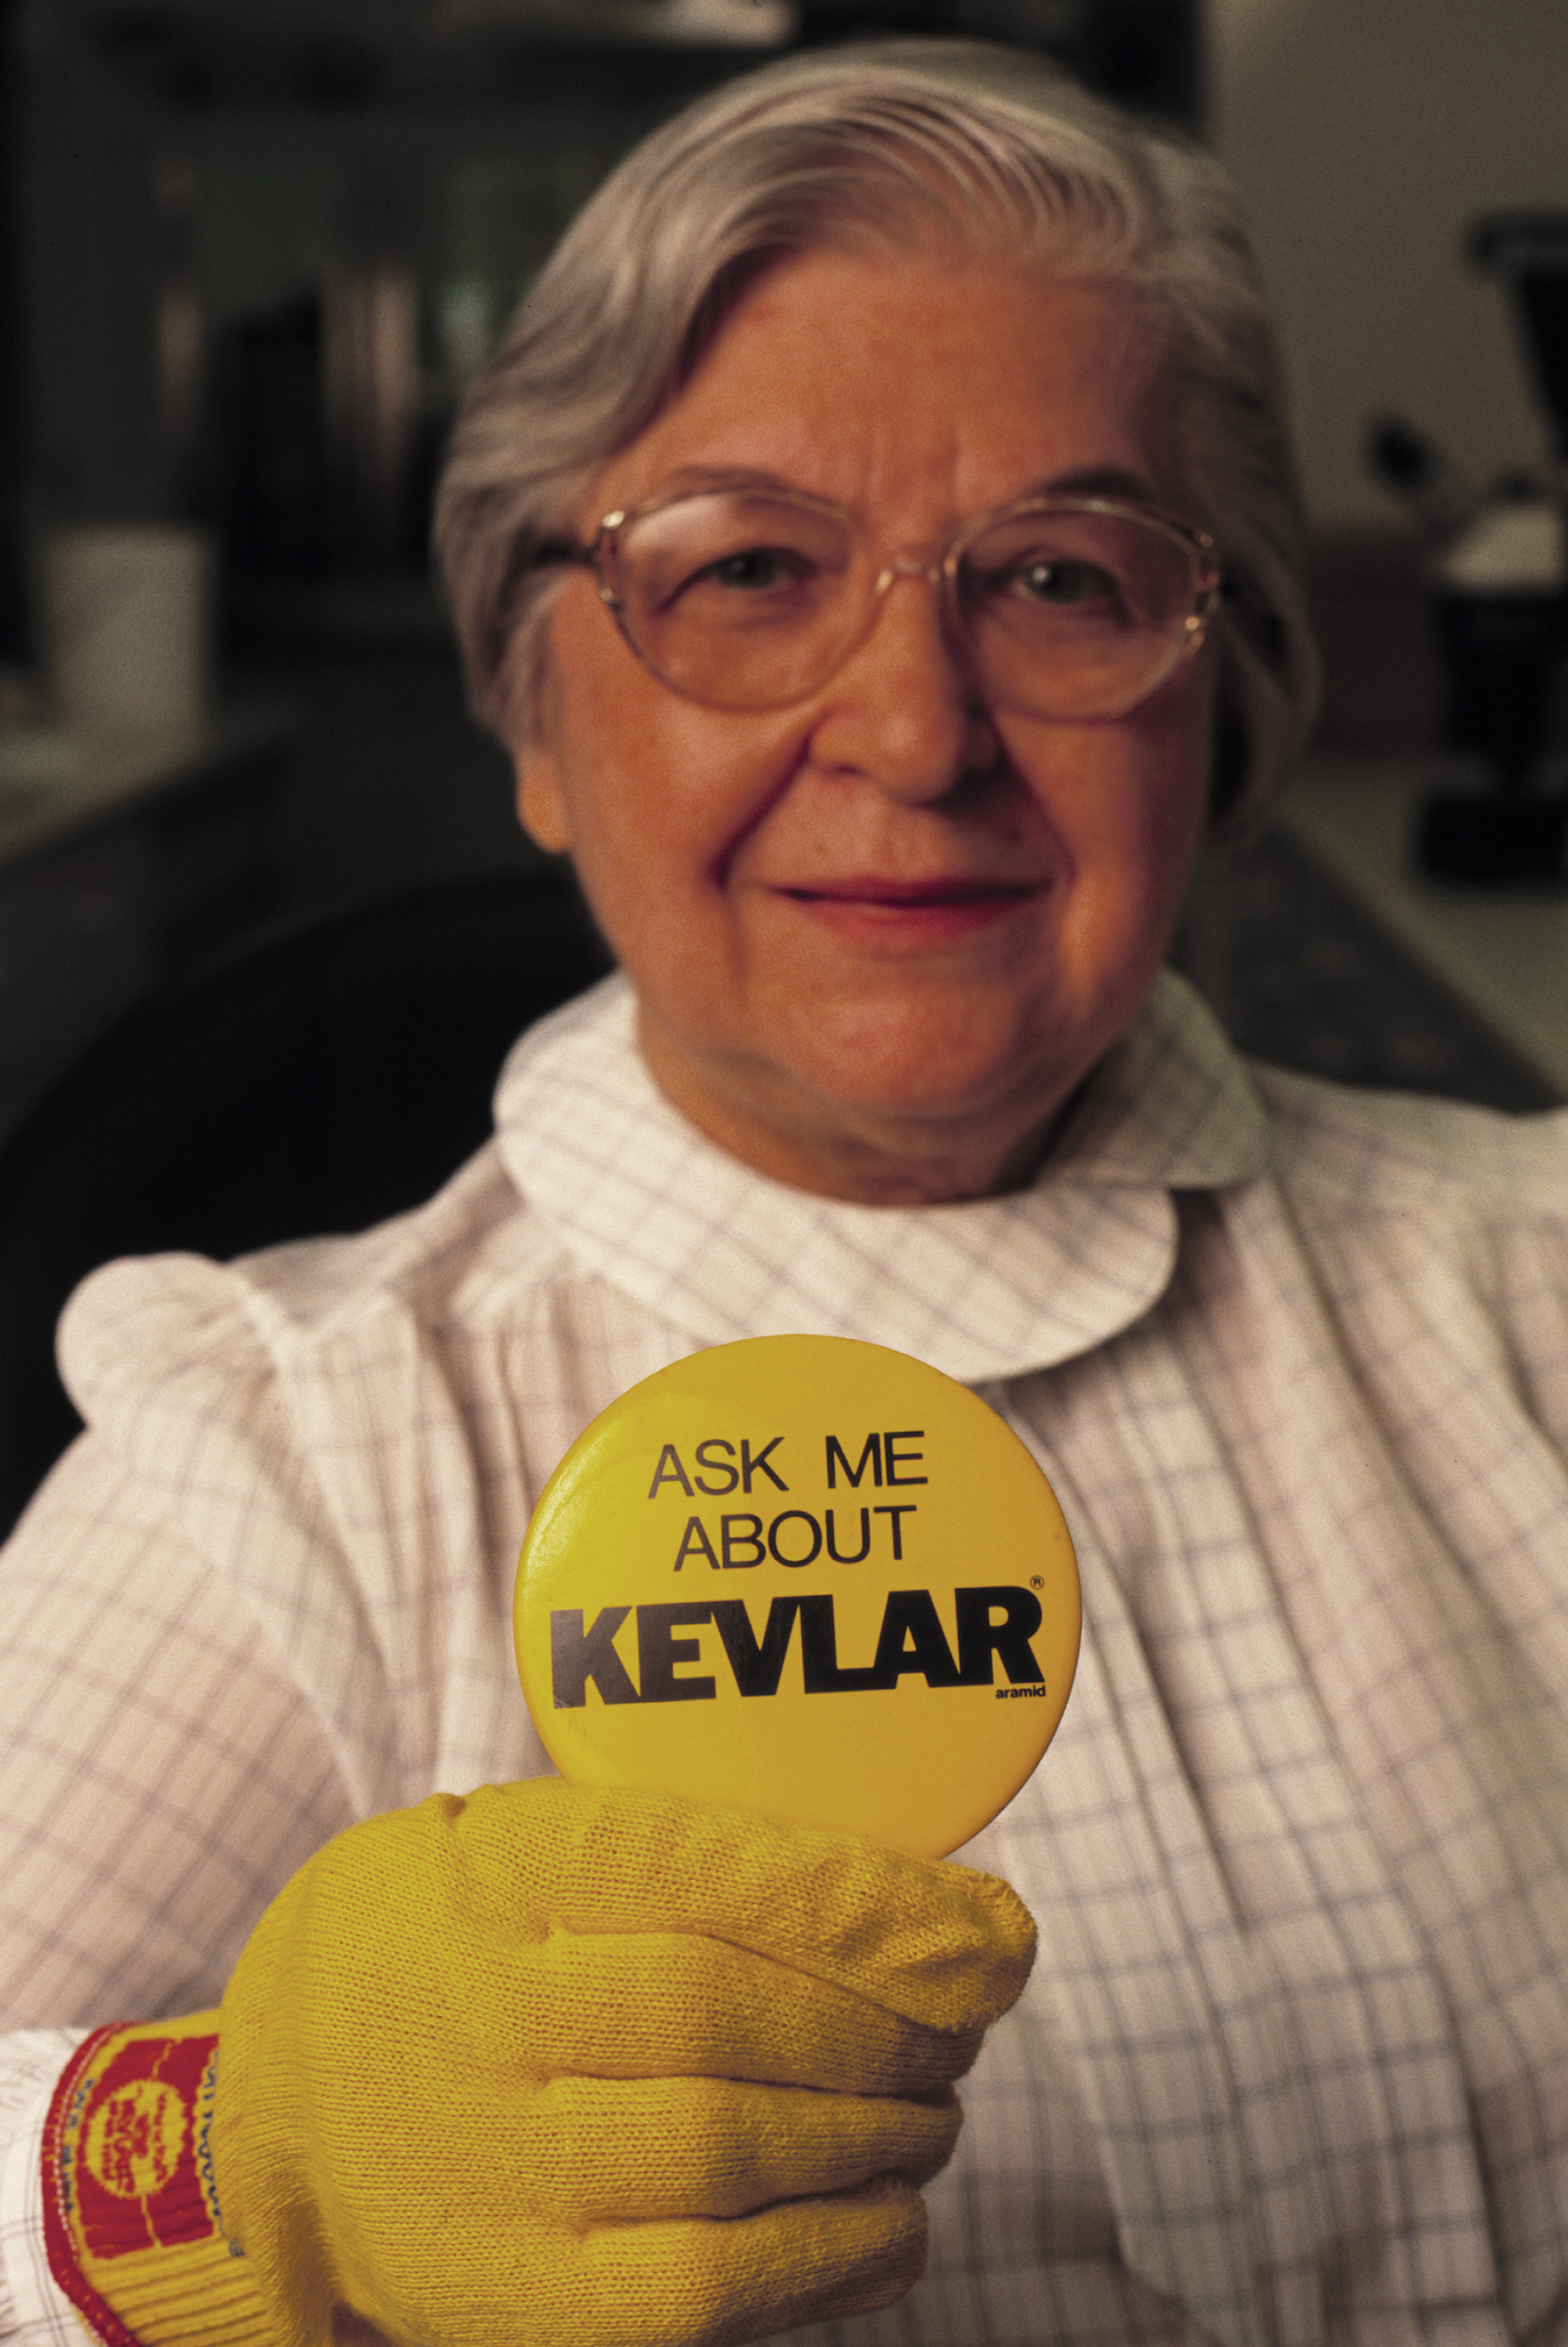 """Inventor Stephanie Kwolek wearing yellow Kevlar glove and holding up yellow button that reads """"Ask Me About Kevlar."""""""